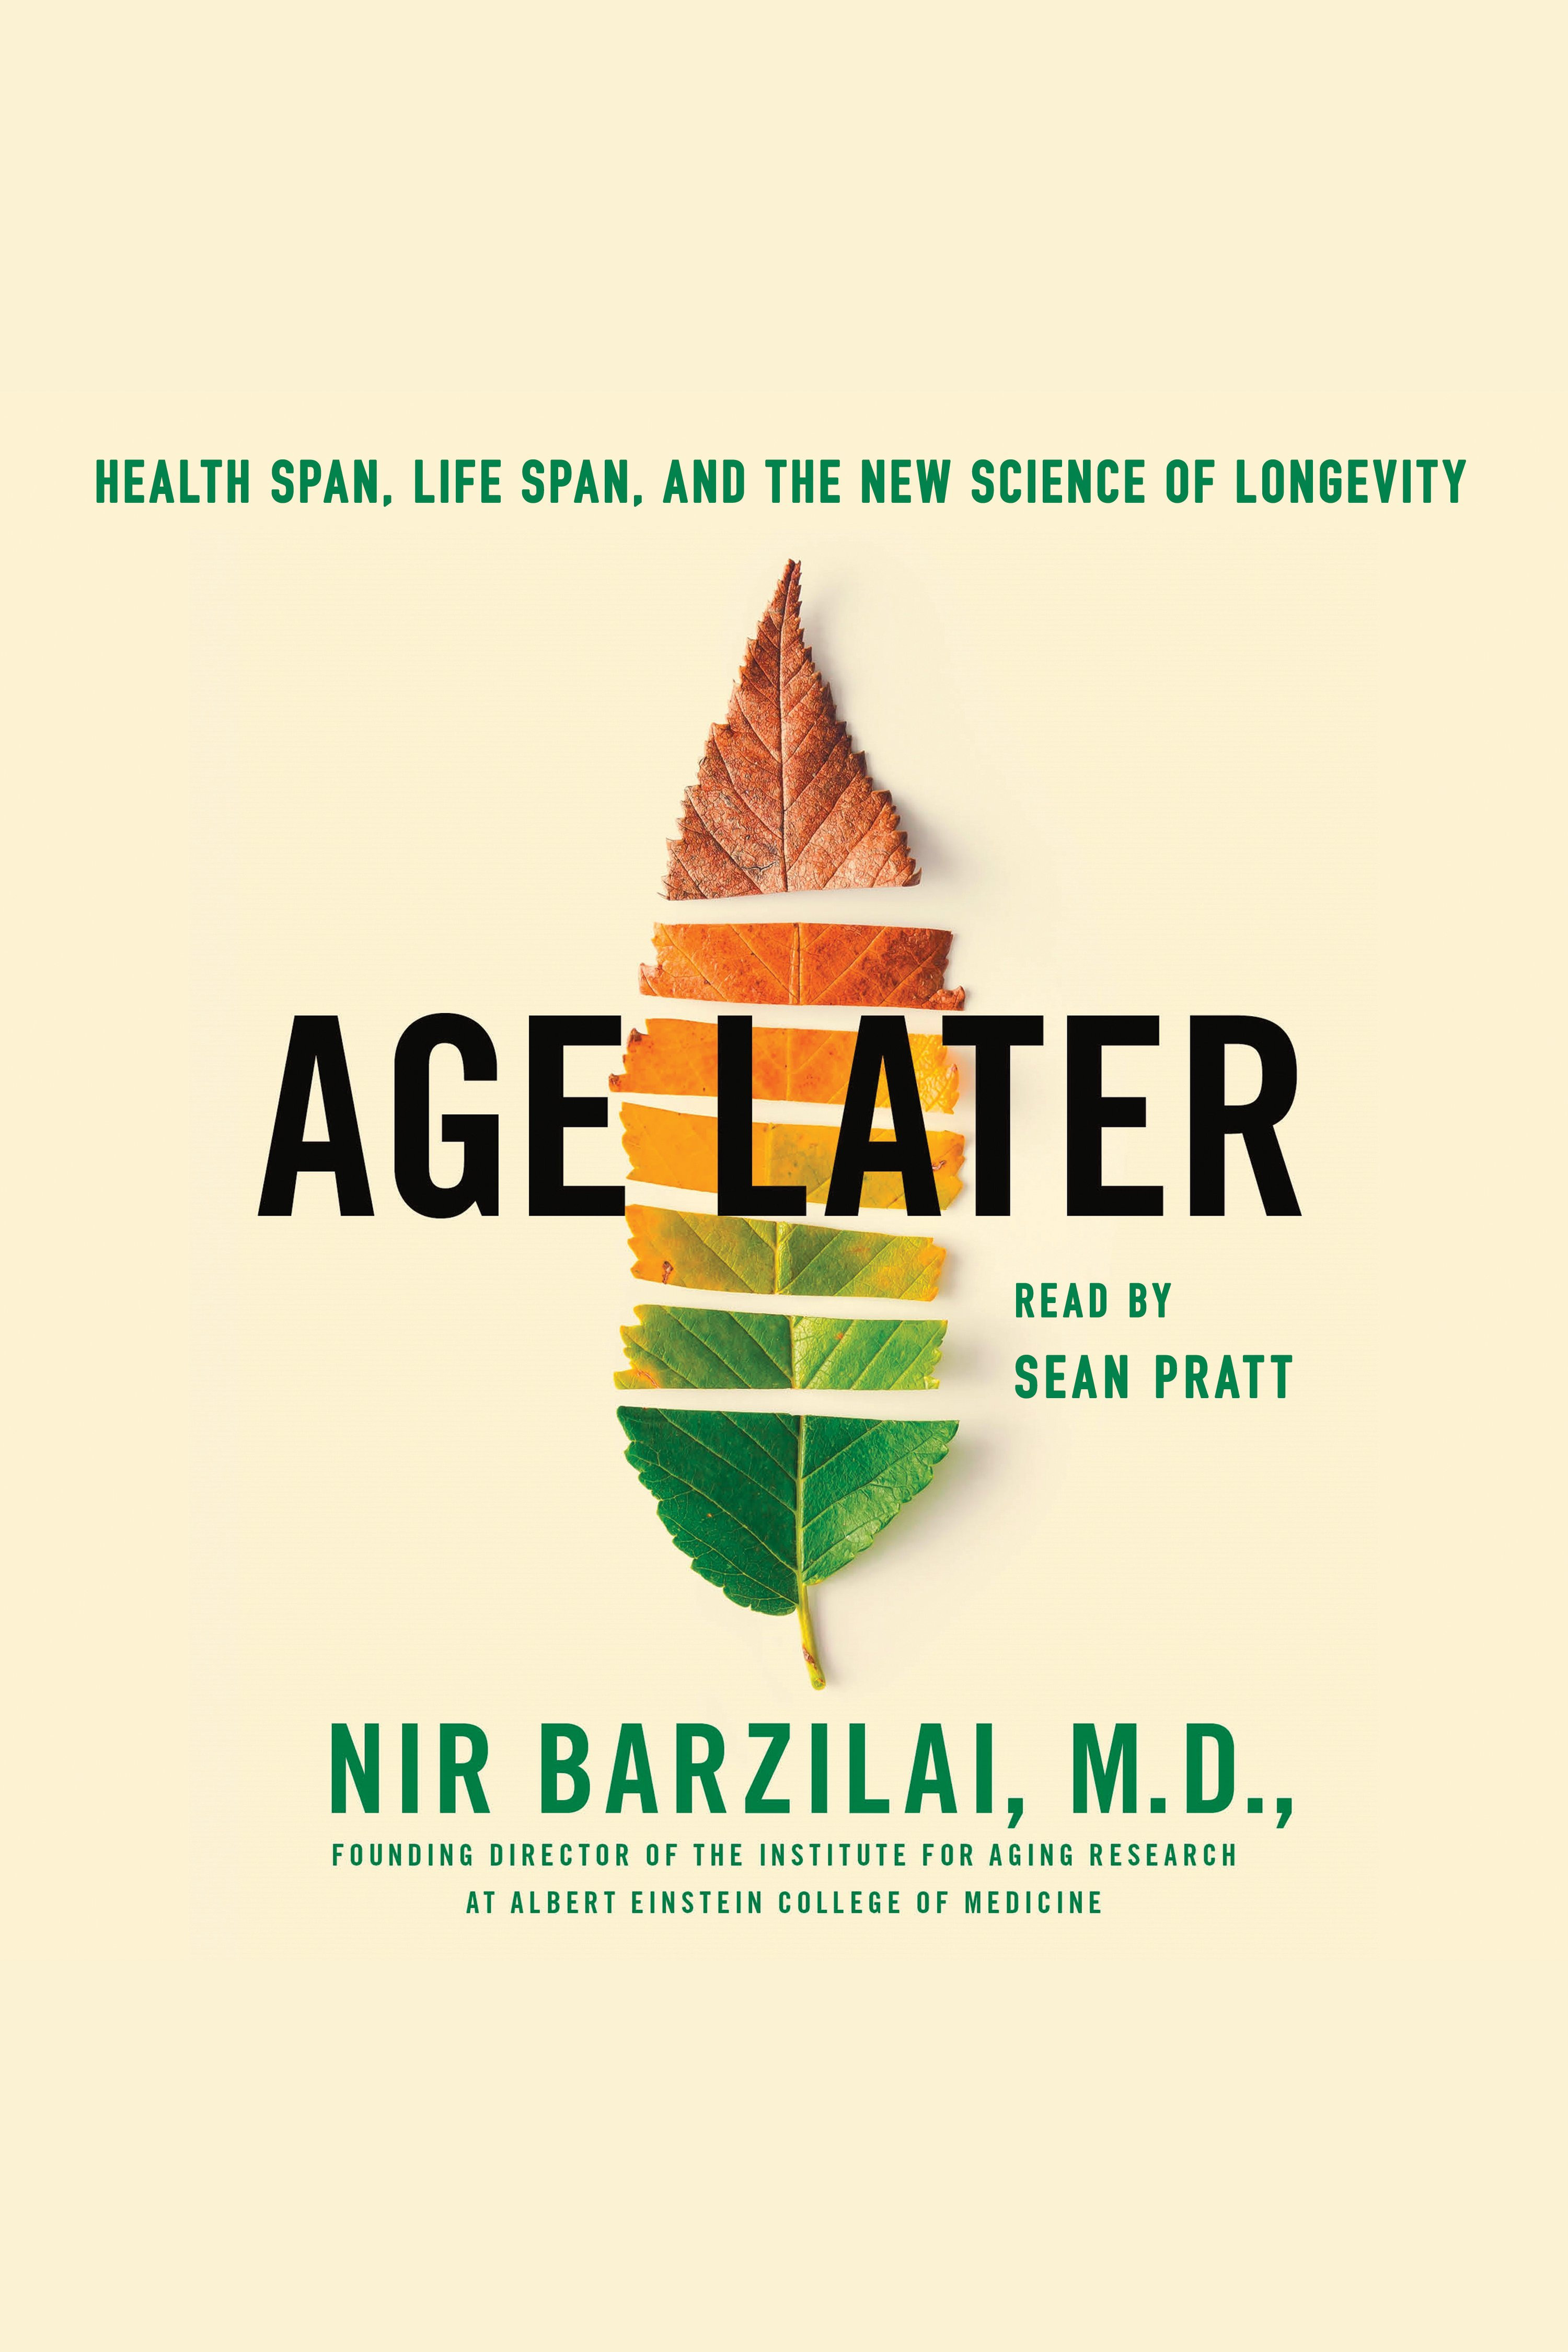 Age Later Healthspan, Lifespan, and the New Science of Longevity